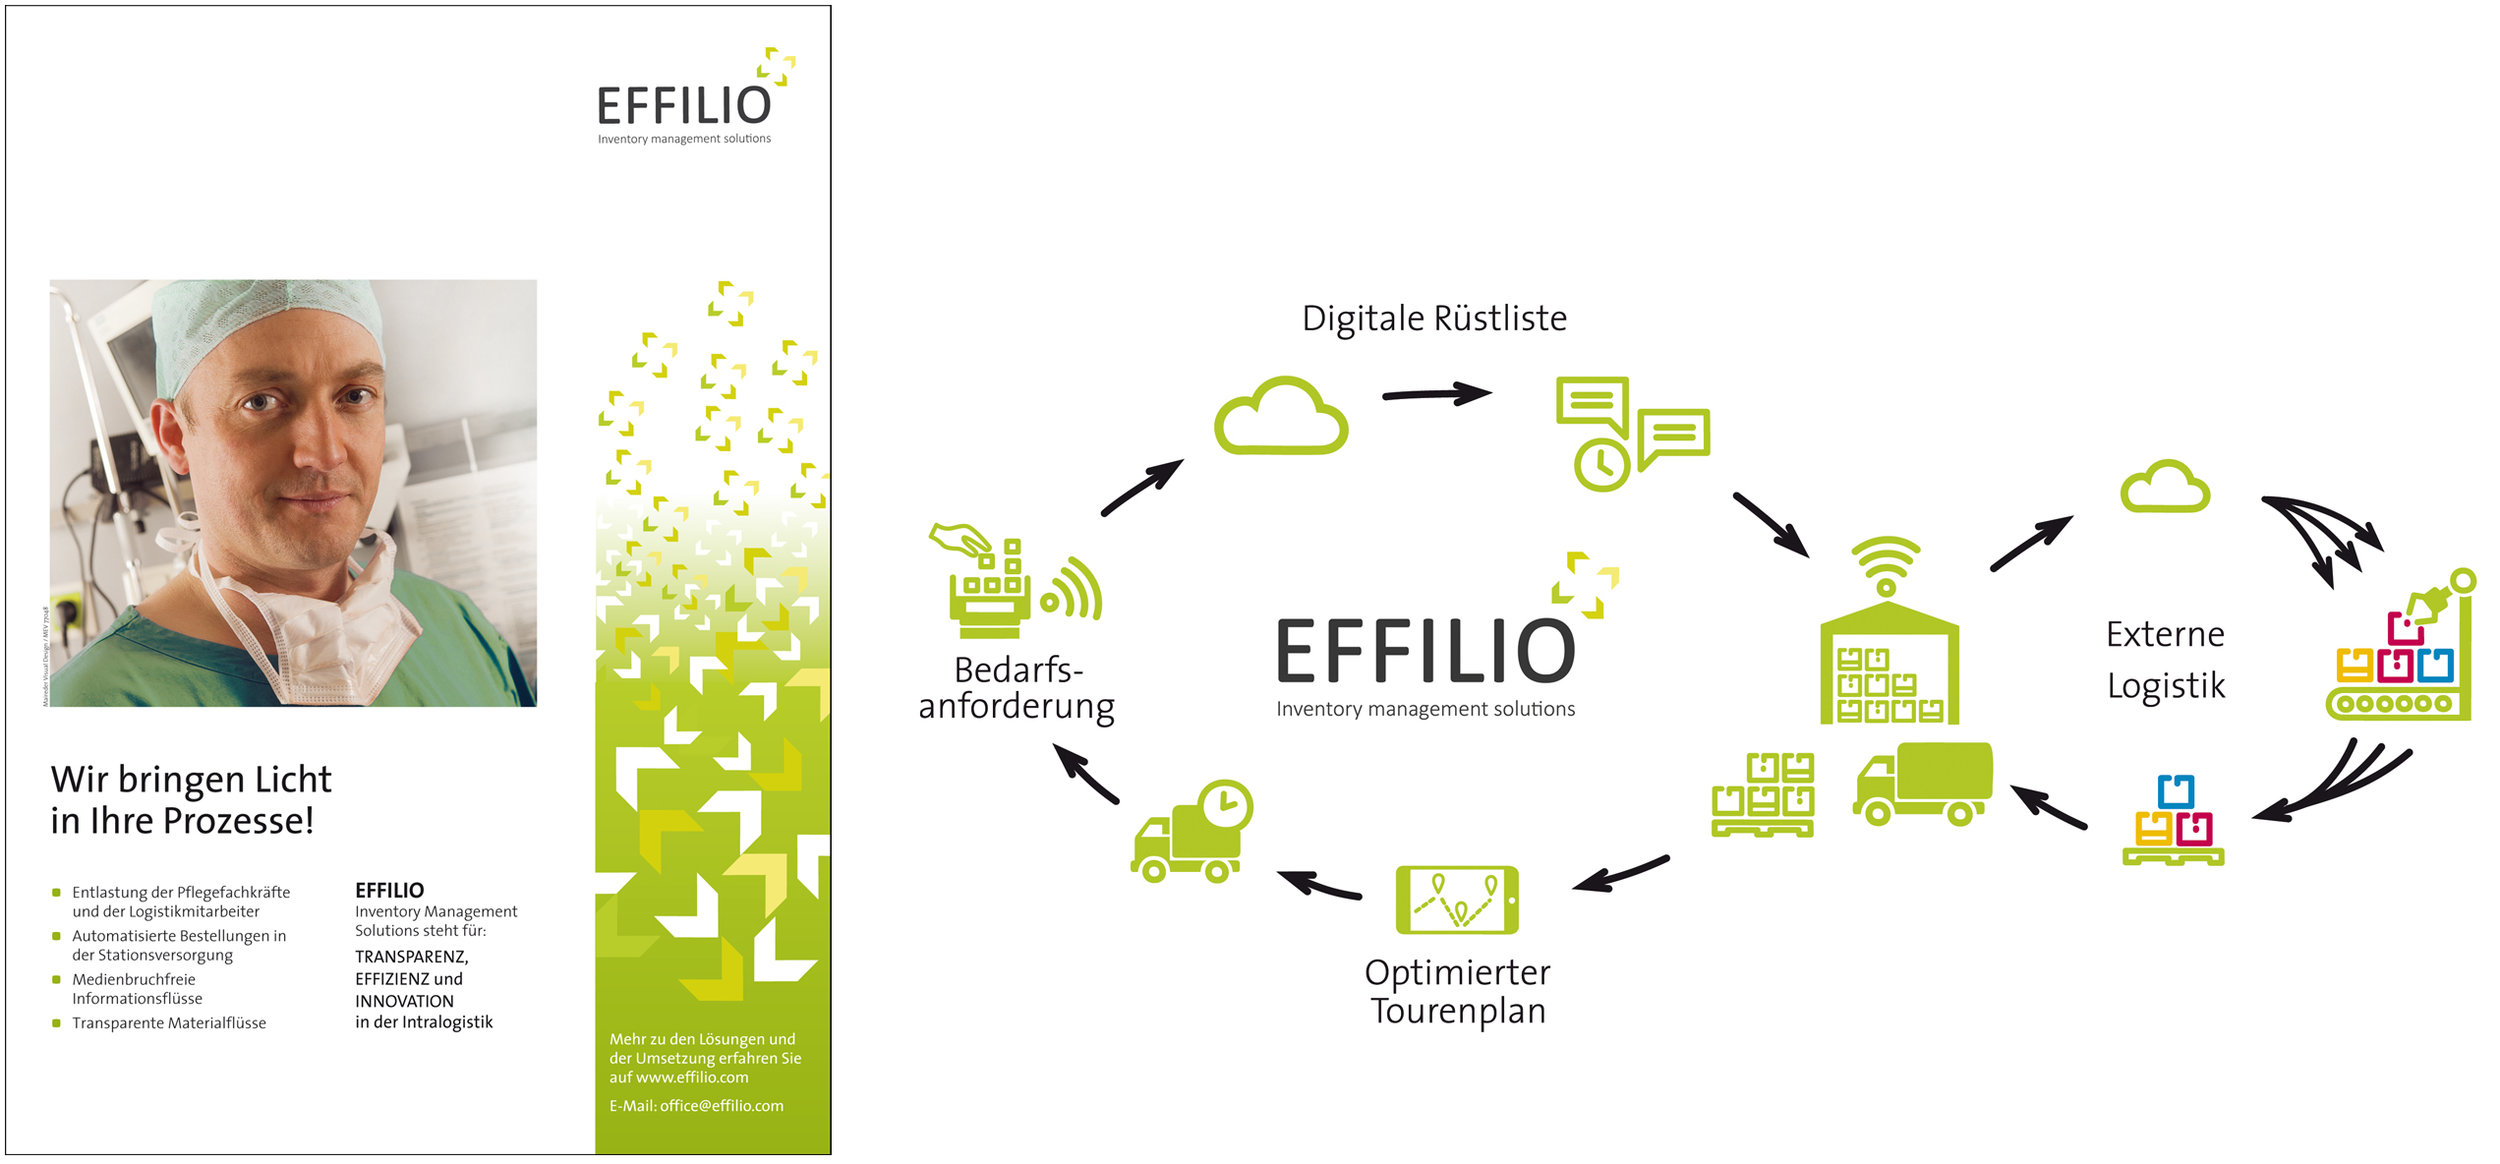 Graphic Design, advertisement and featured artwork industry 4.0 for Effilio, inventory management solutions